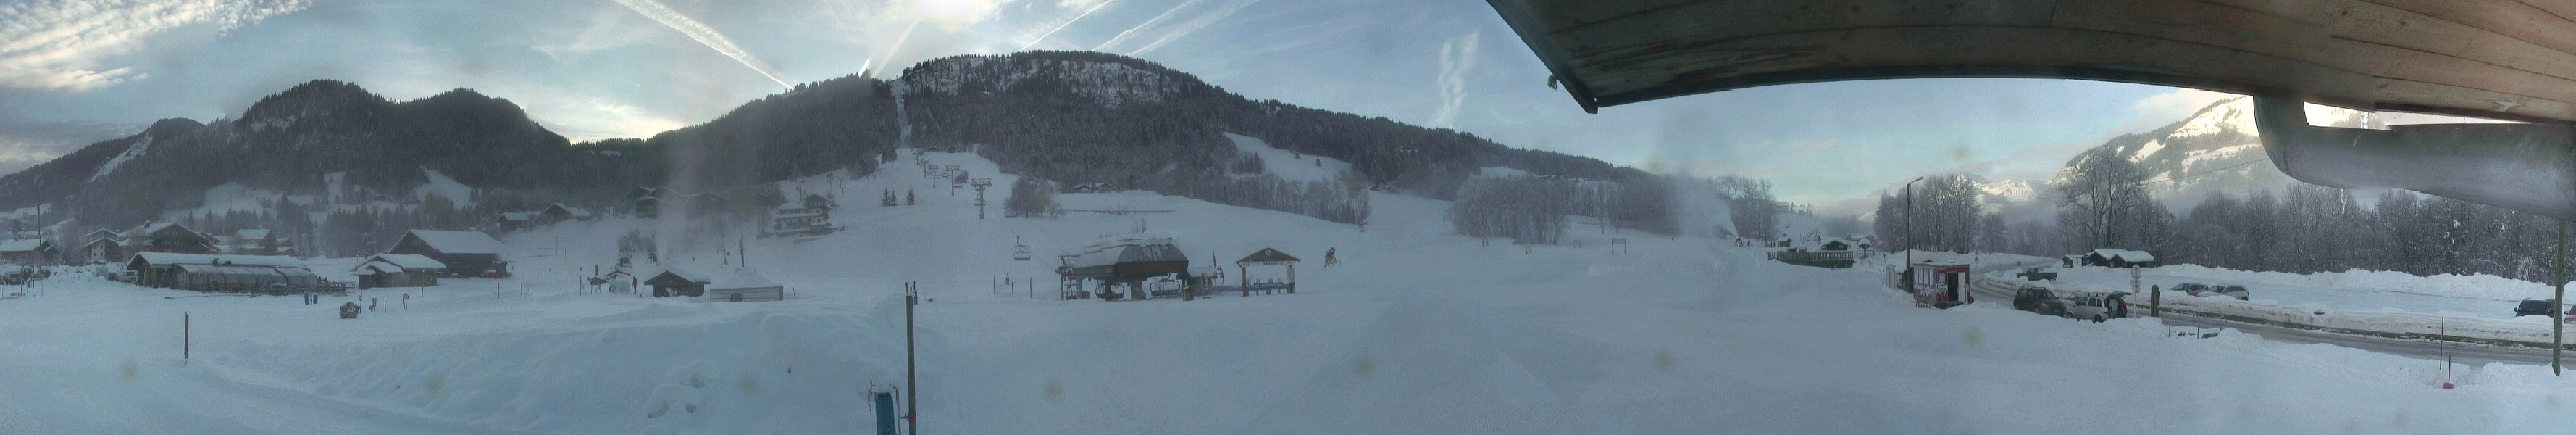 La production de neige de culture continue à Praz sur Arly